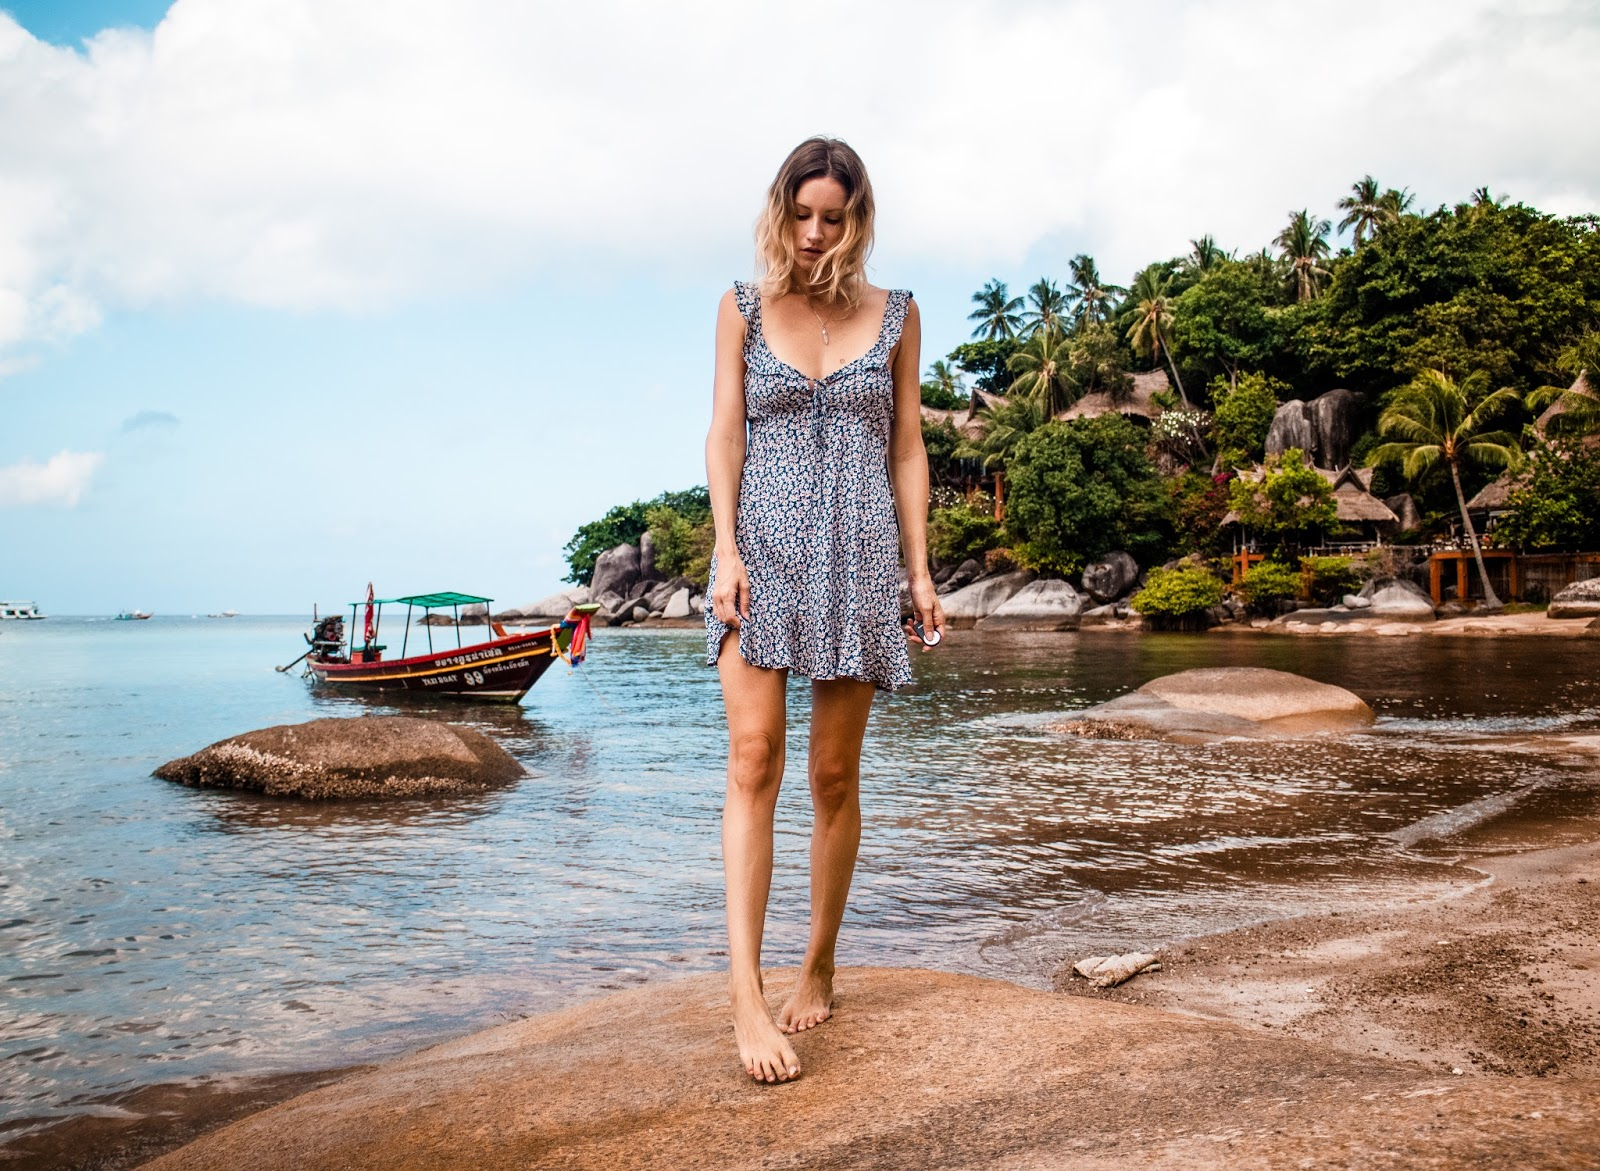 fashion and travel blogger, Alison Hutchinson, is wearing an Auguste dress in Koh Tao